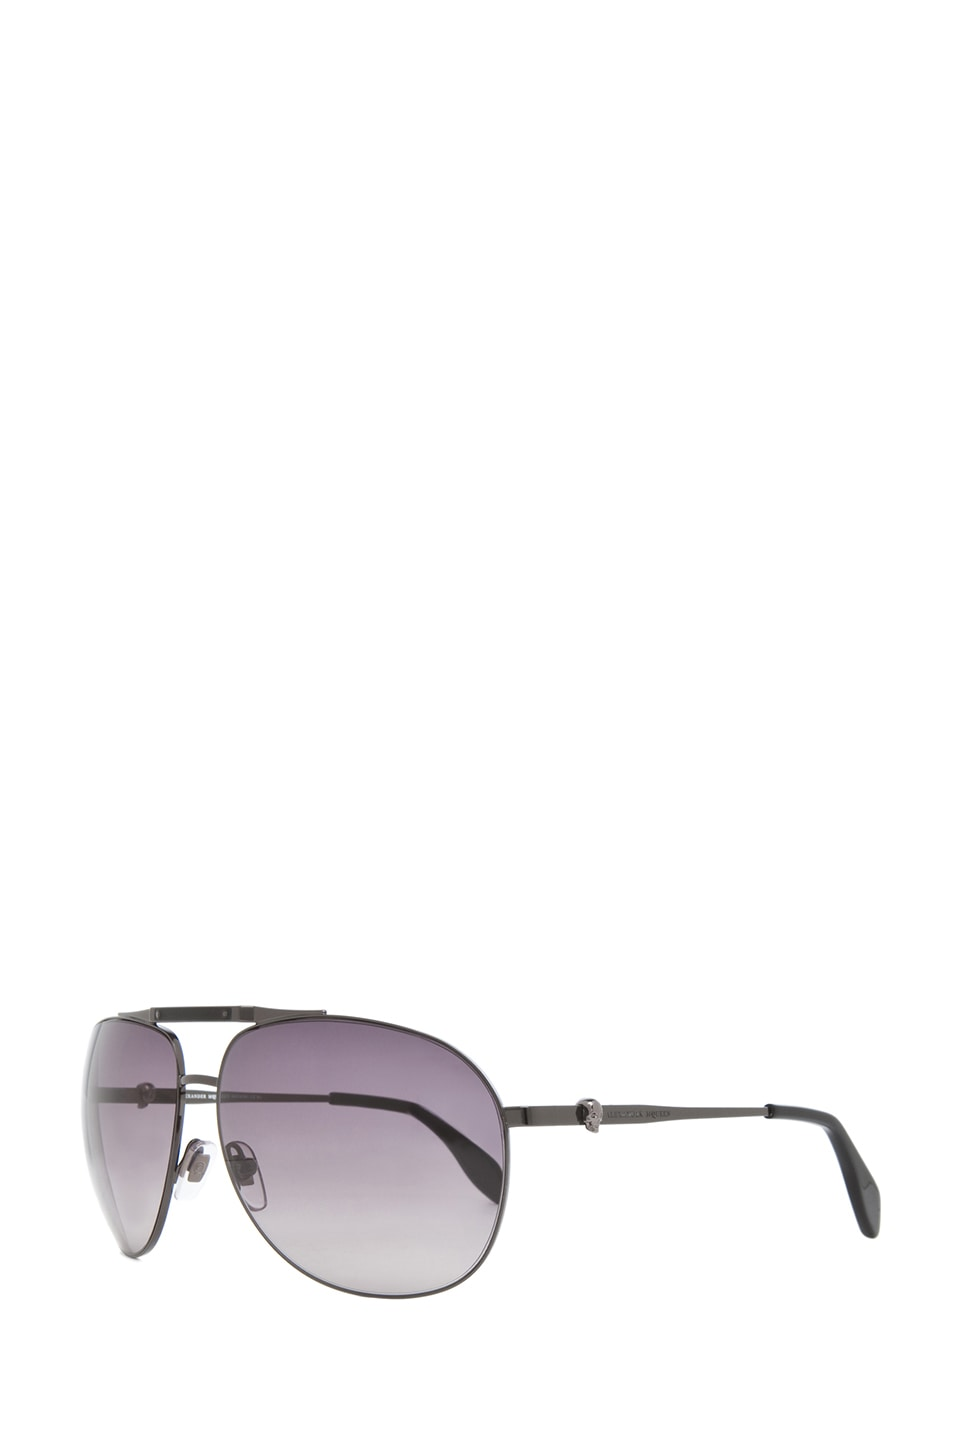 Image 2 of Alexander McQueen 4210 Sunglasses in Dark Ruthenium & Brown Gradient